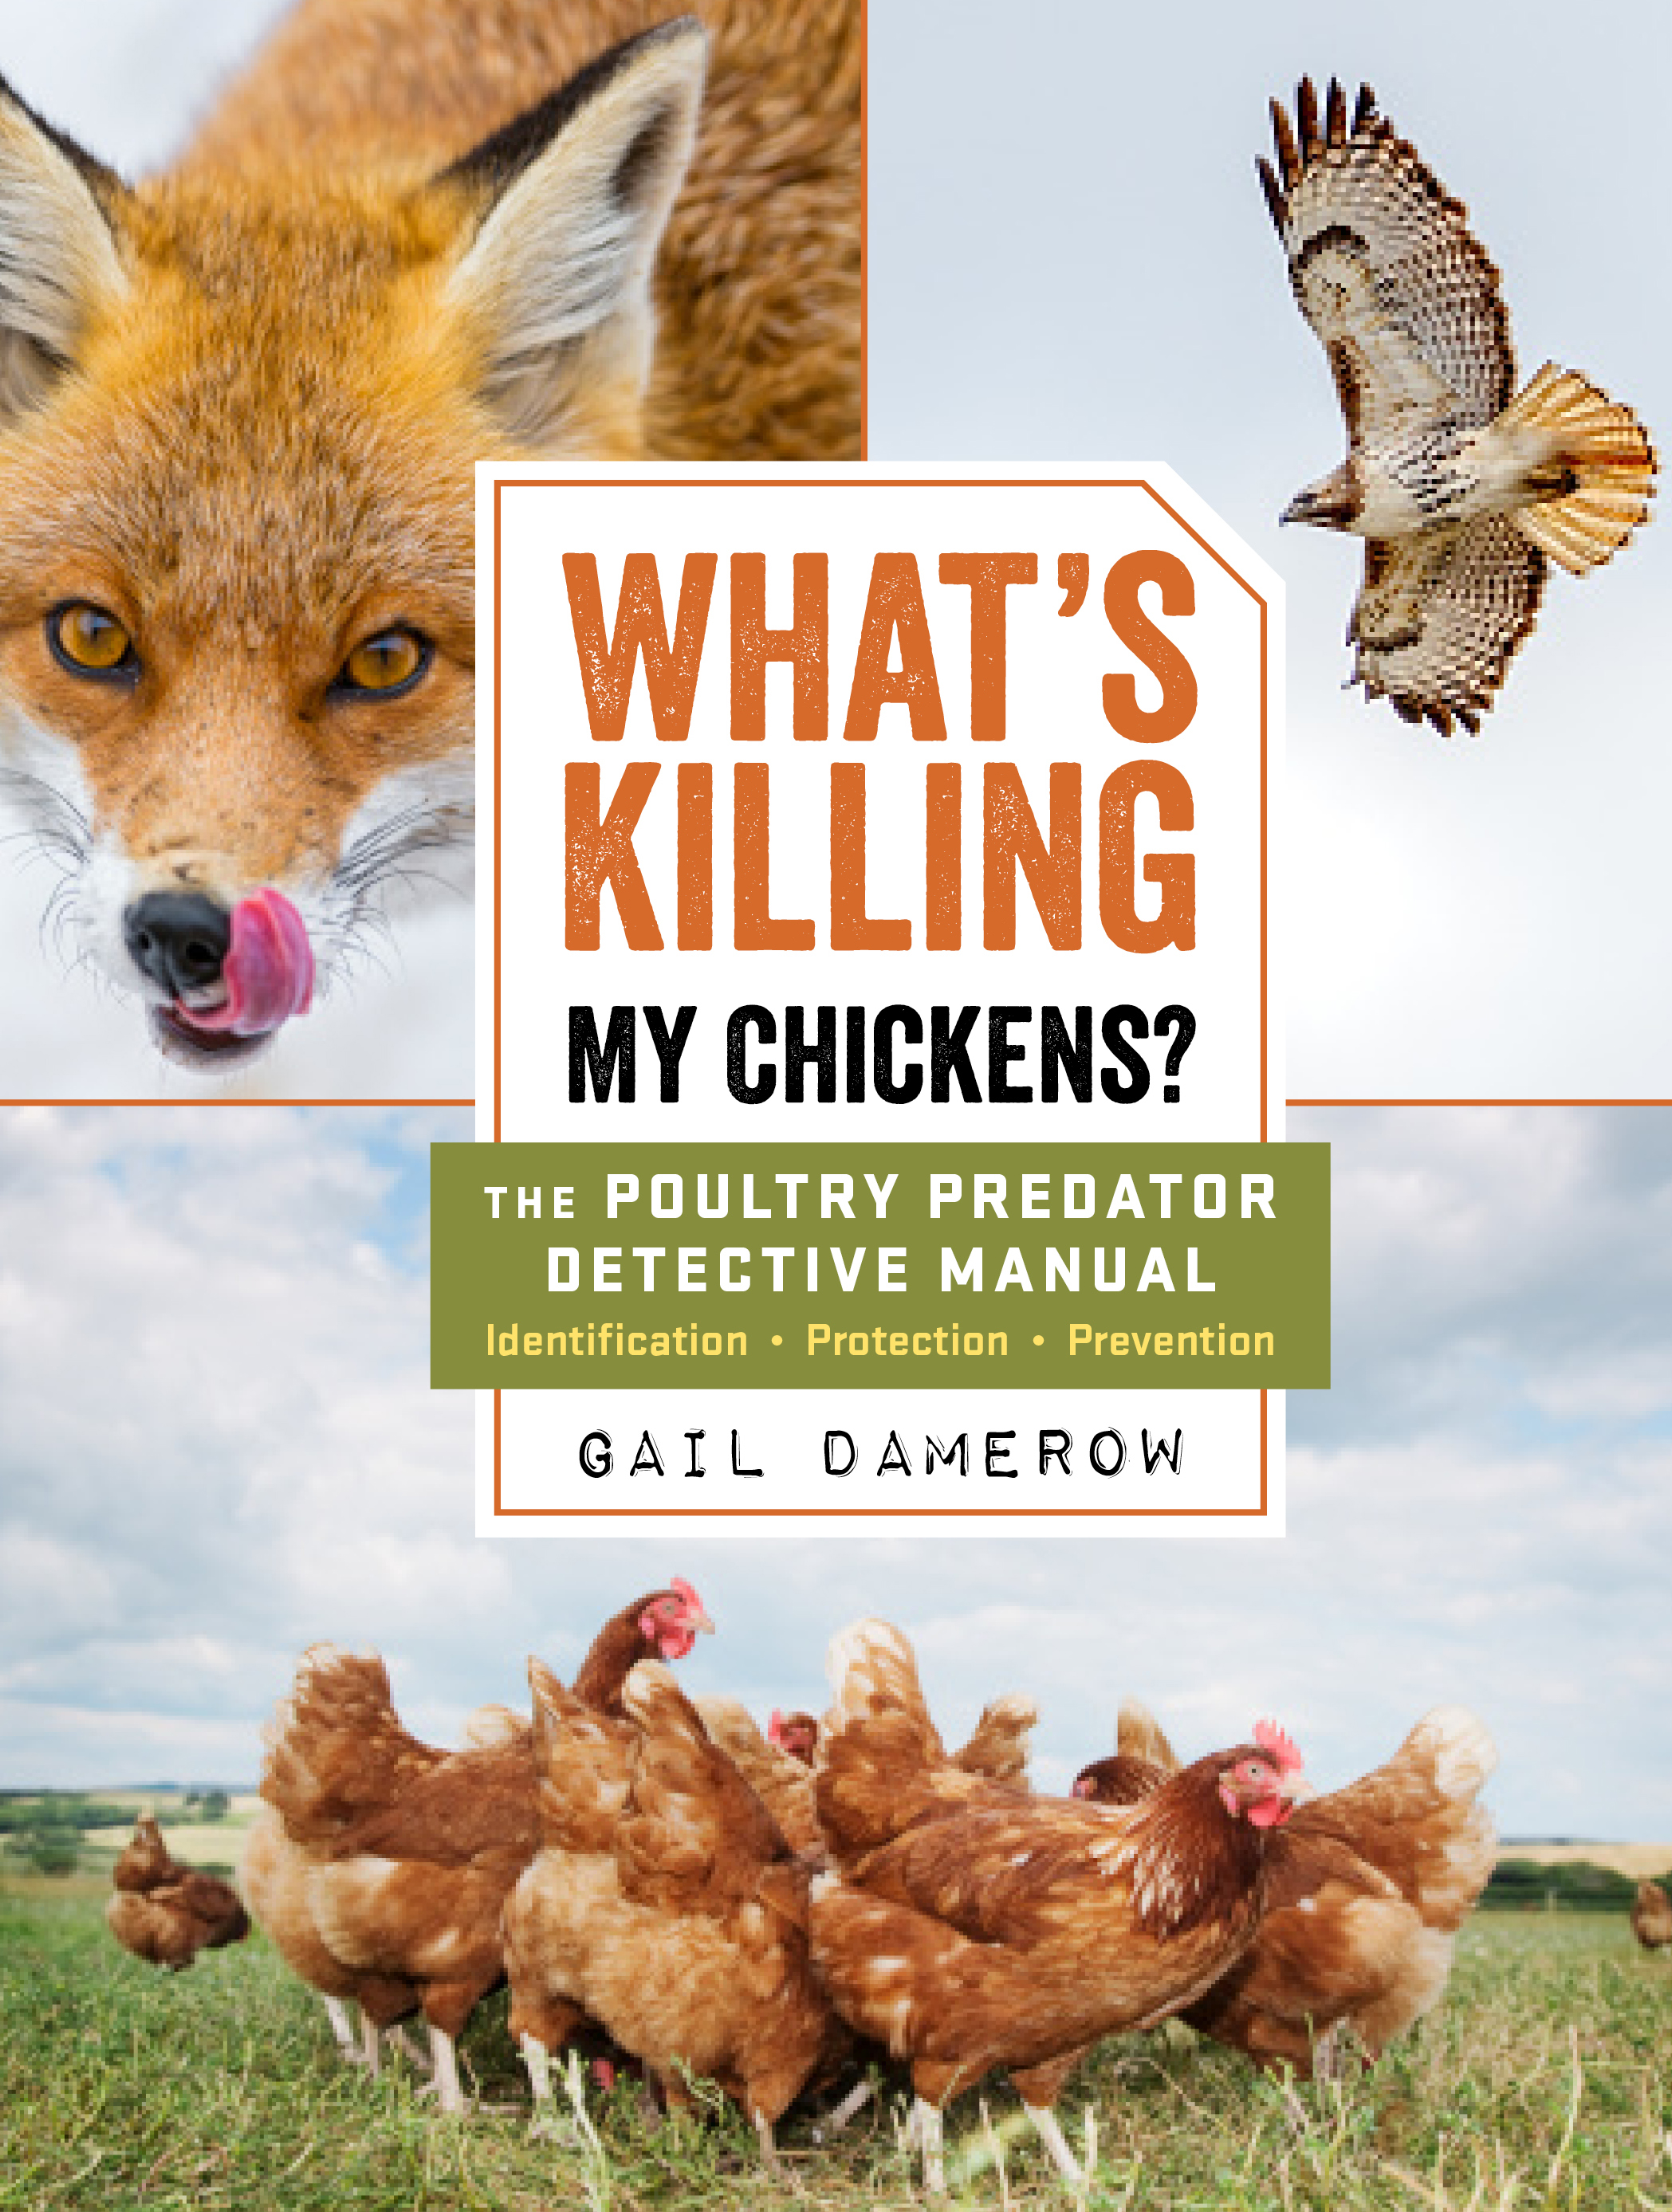 What's Killing My Chickens? The Poultry Predator Detective Manual - Gail Damerow